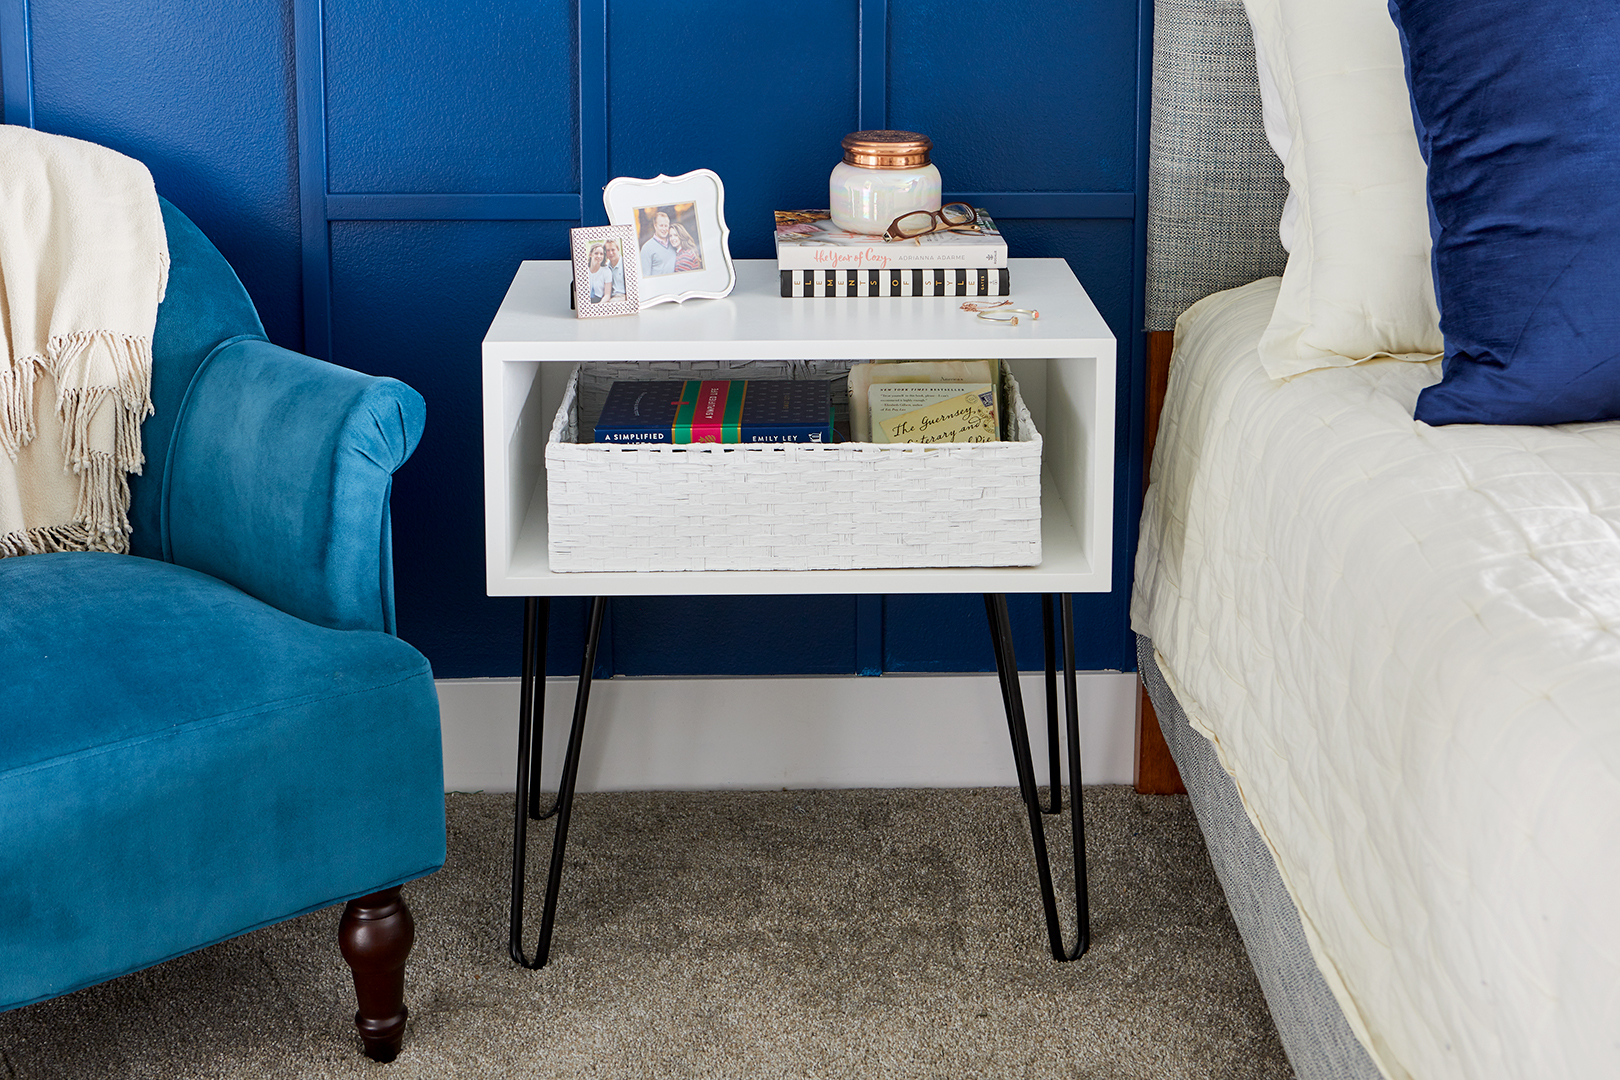 diy hairpin nightstand better homes gardens white box side table with black metal legs leg accent industrial look end tables vintage nautical lights pine trestle whole tablecloths